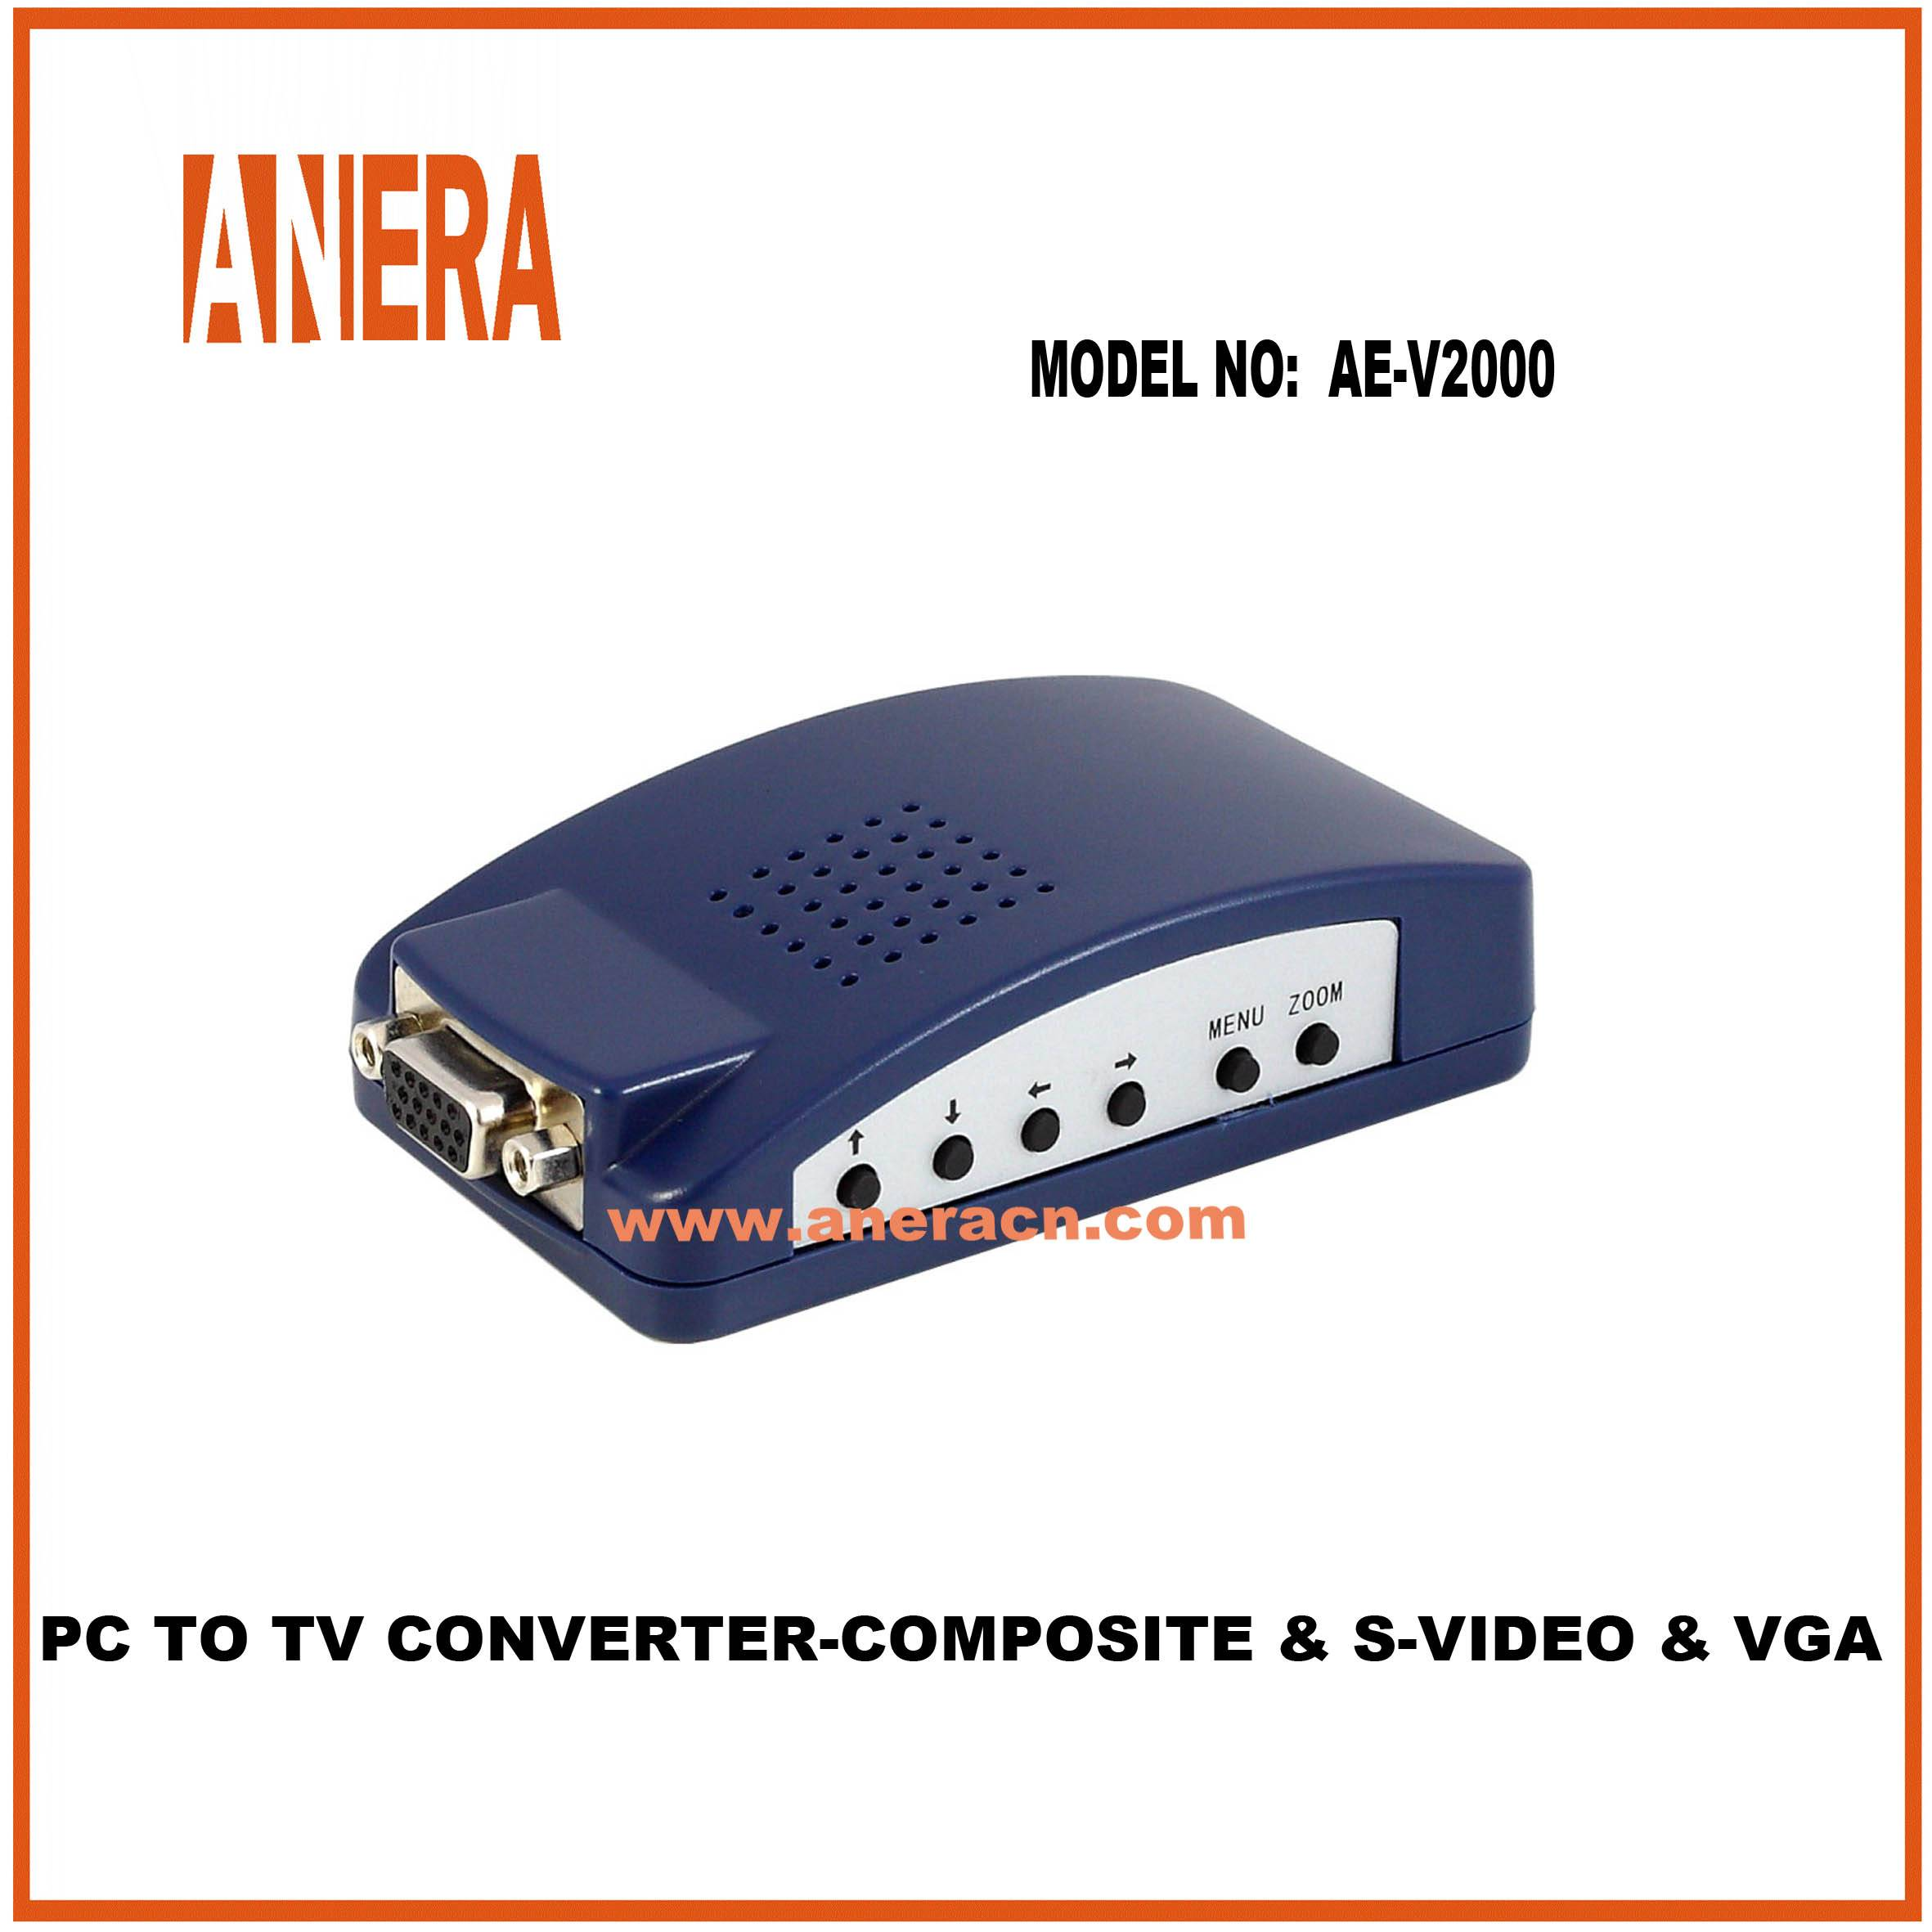 PC TO TV CONVERTER-COMPOSITE & S-VIDEO & VGA LOOPTHROUGH